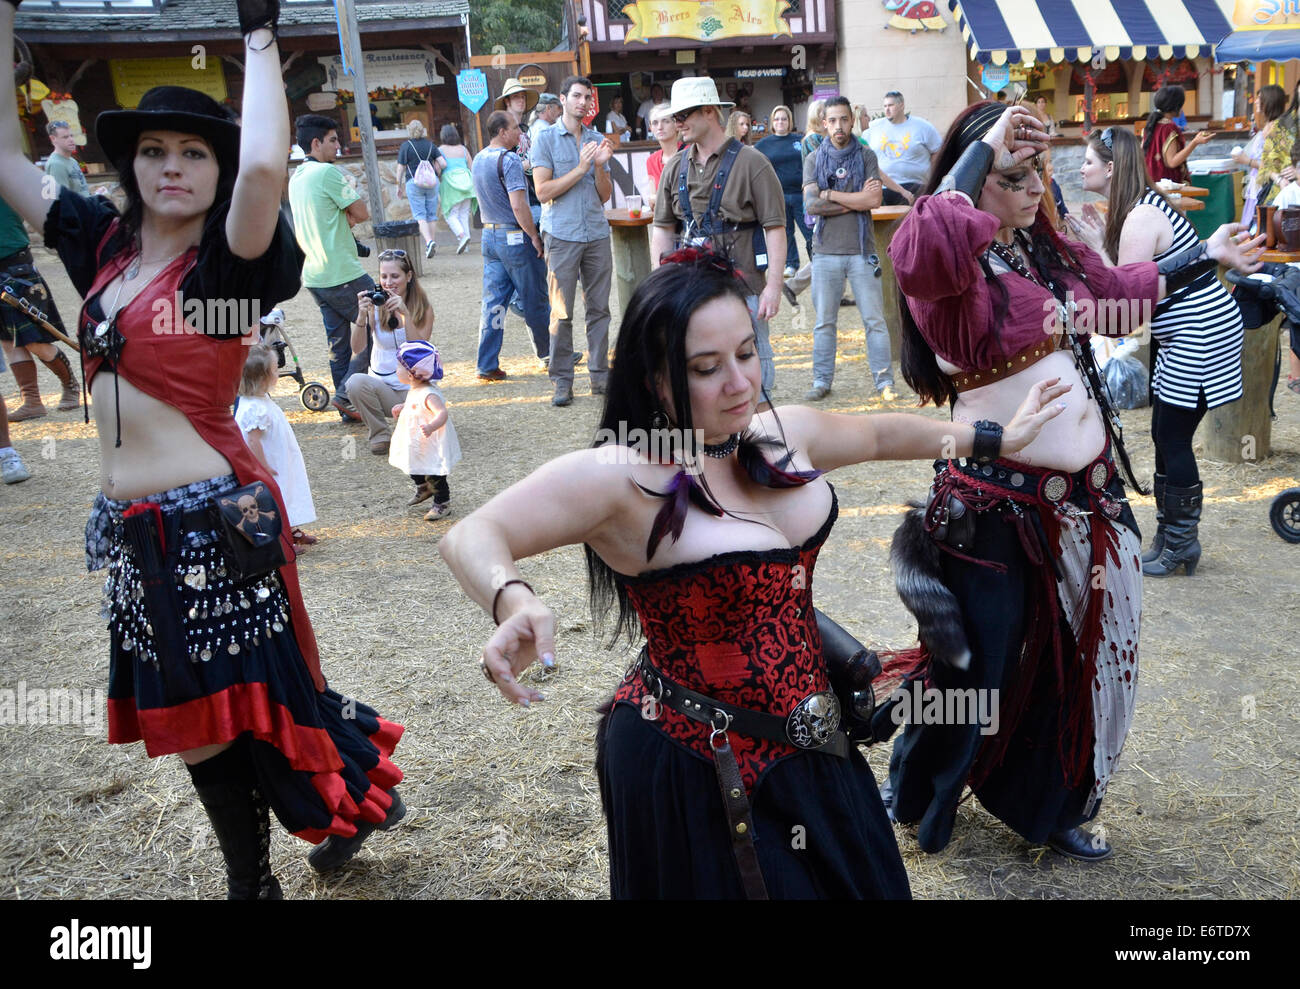 3 women dancing at the Renaissance Festival in Crownsville